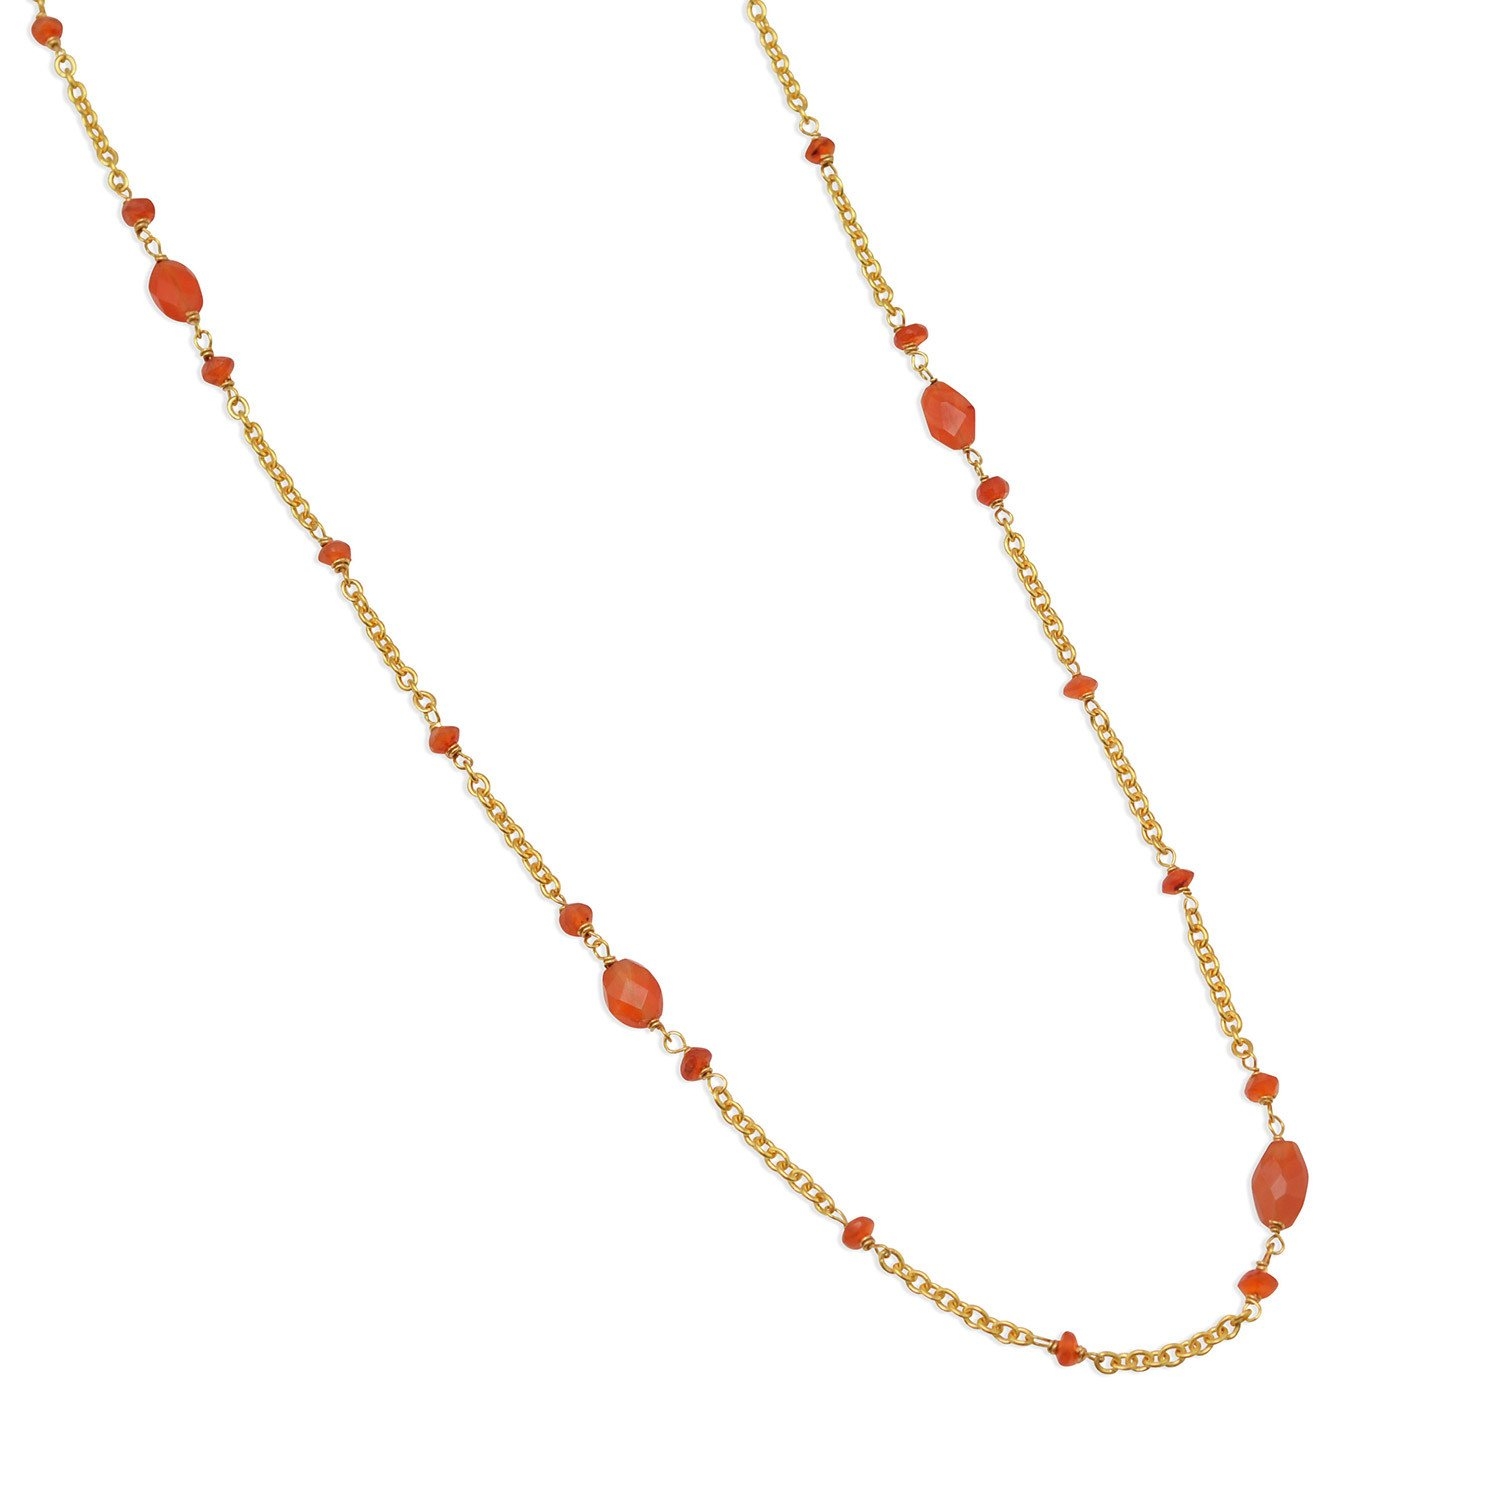 36″ Ultra Long 14 Karat Gold Plated Brass Necklace with Carnelian Beads